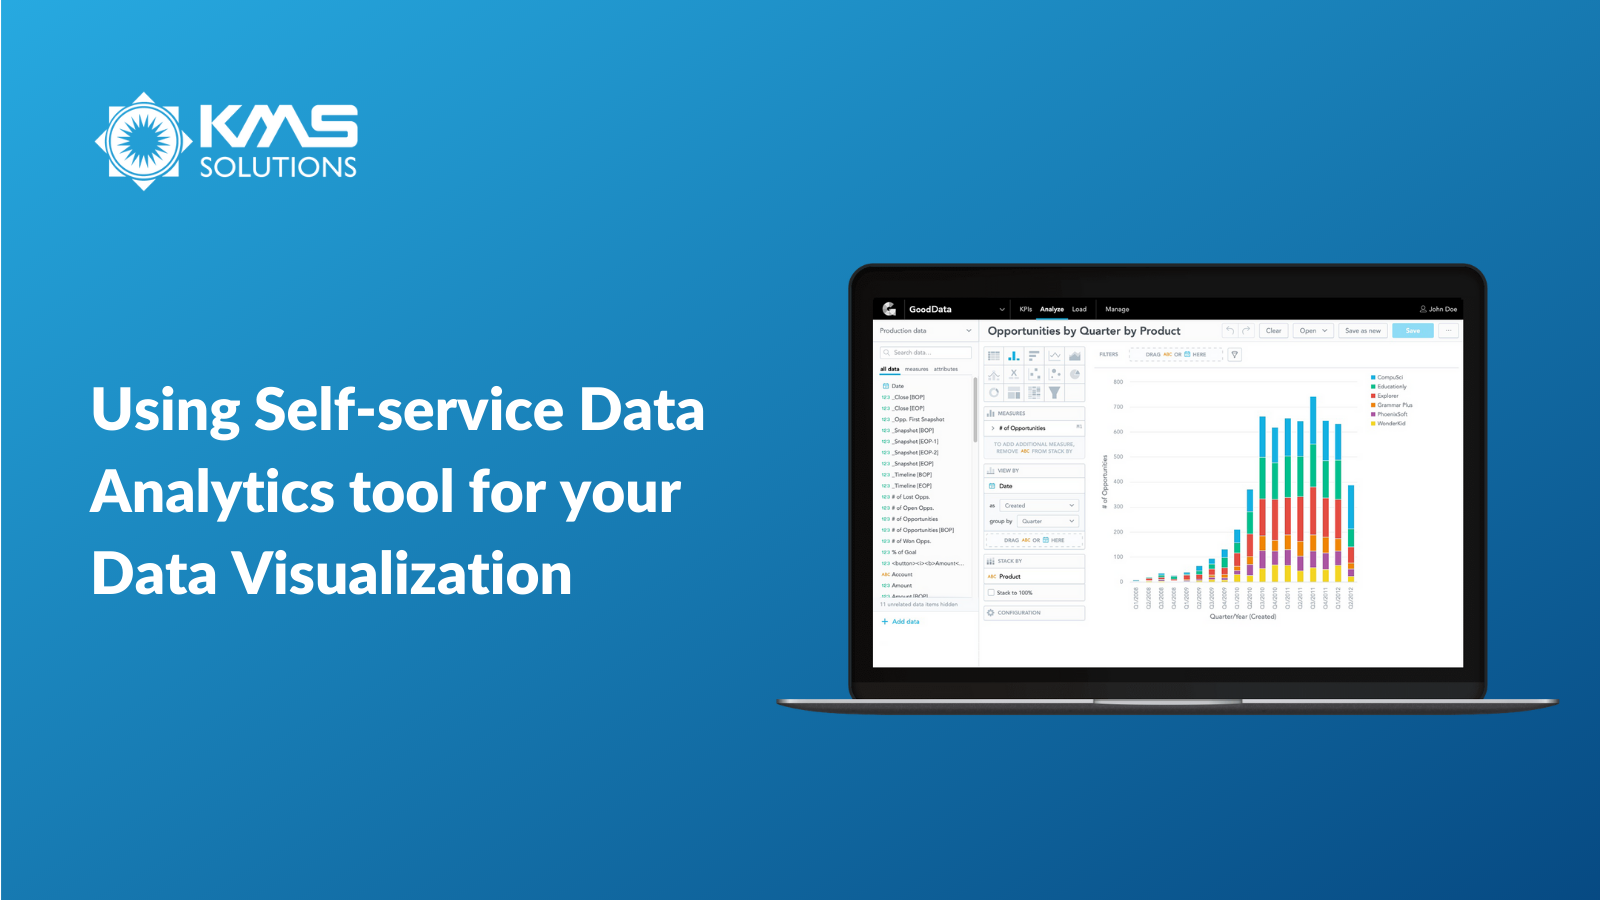 Using Self-service Data Analytics tool for your Data Visualization